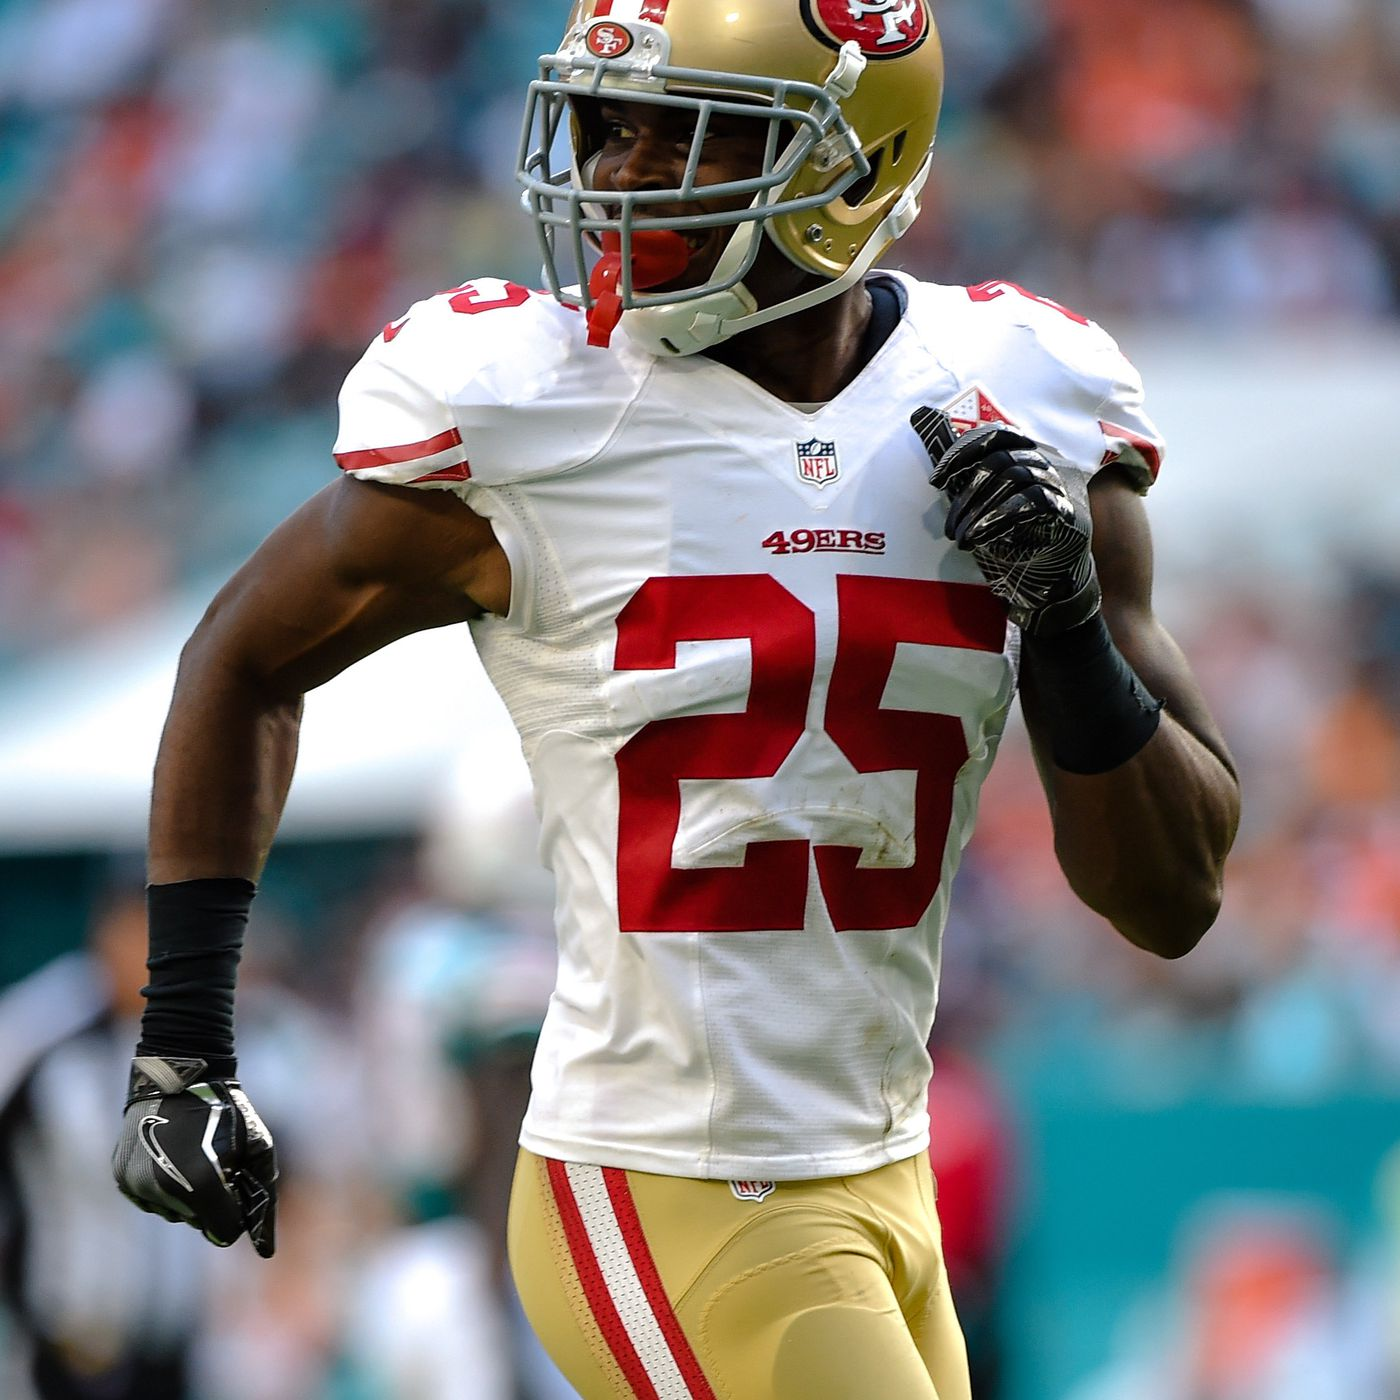 49ers history  When position changes go right - Niners Nation fd1f58d74